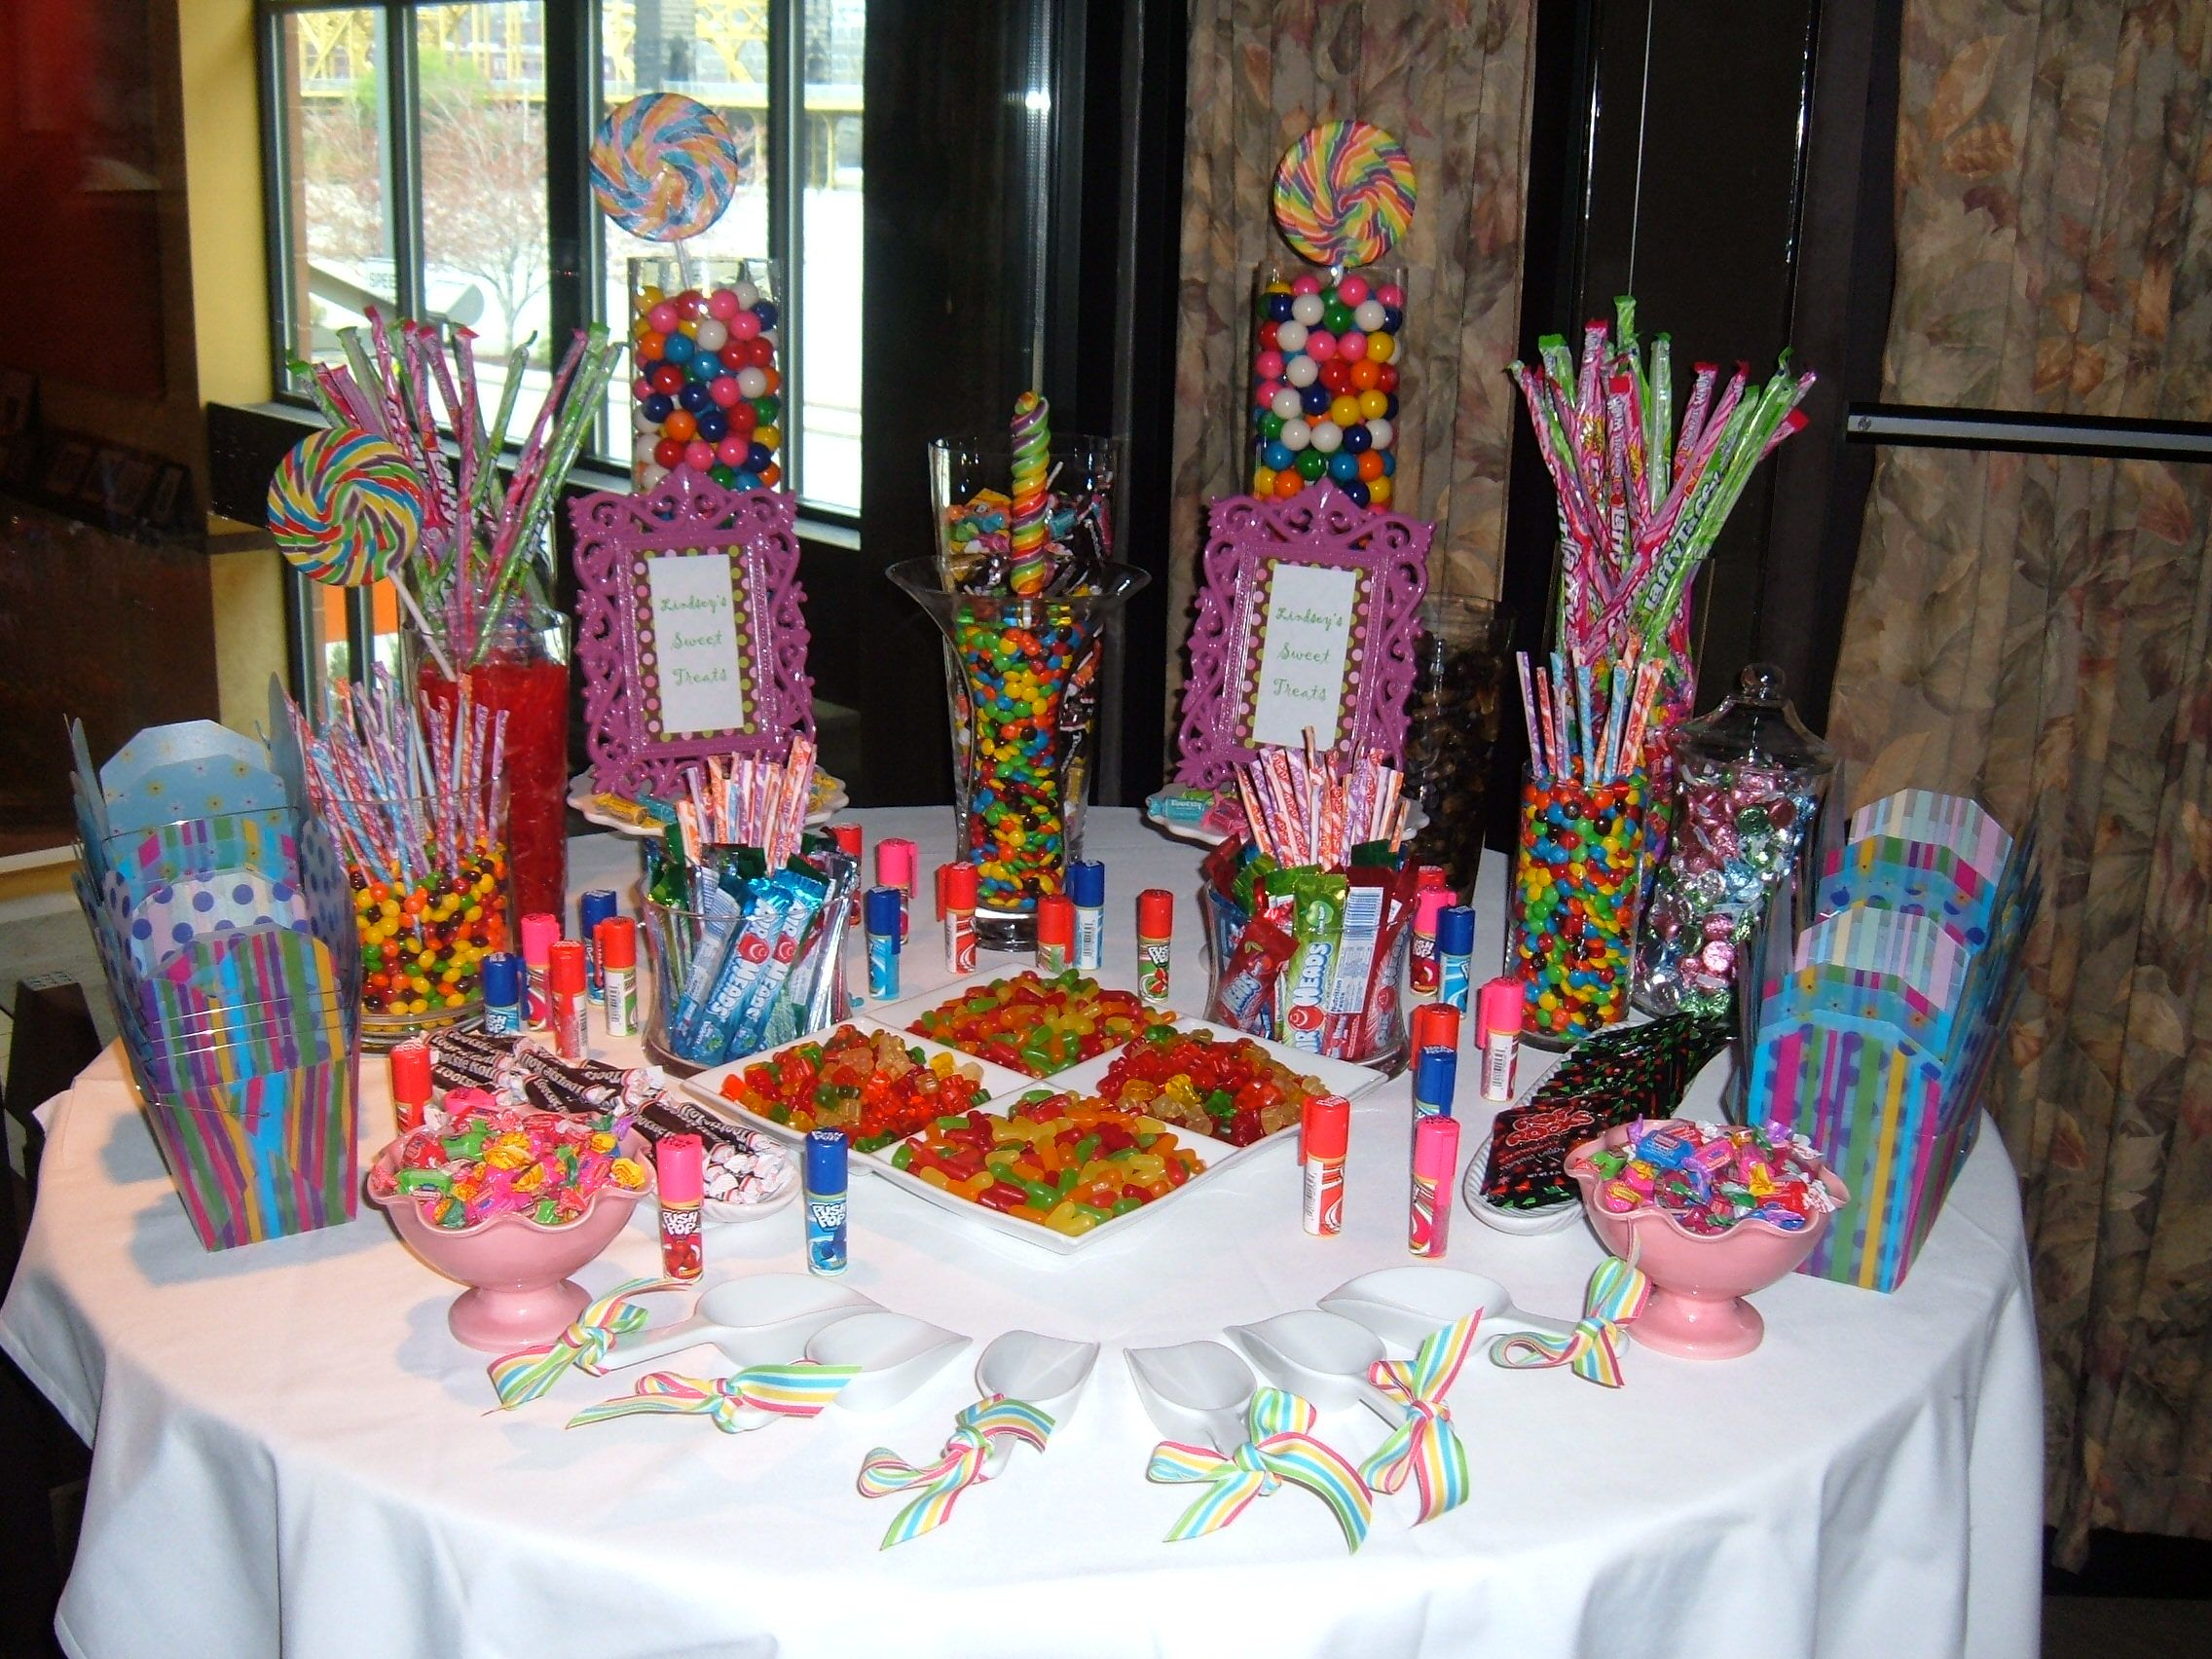 Classic Holiday Dessert Table - Glorious Treats |Sweet Treats Party Table